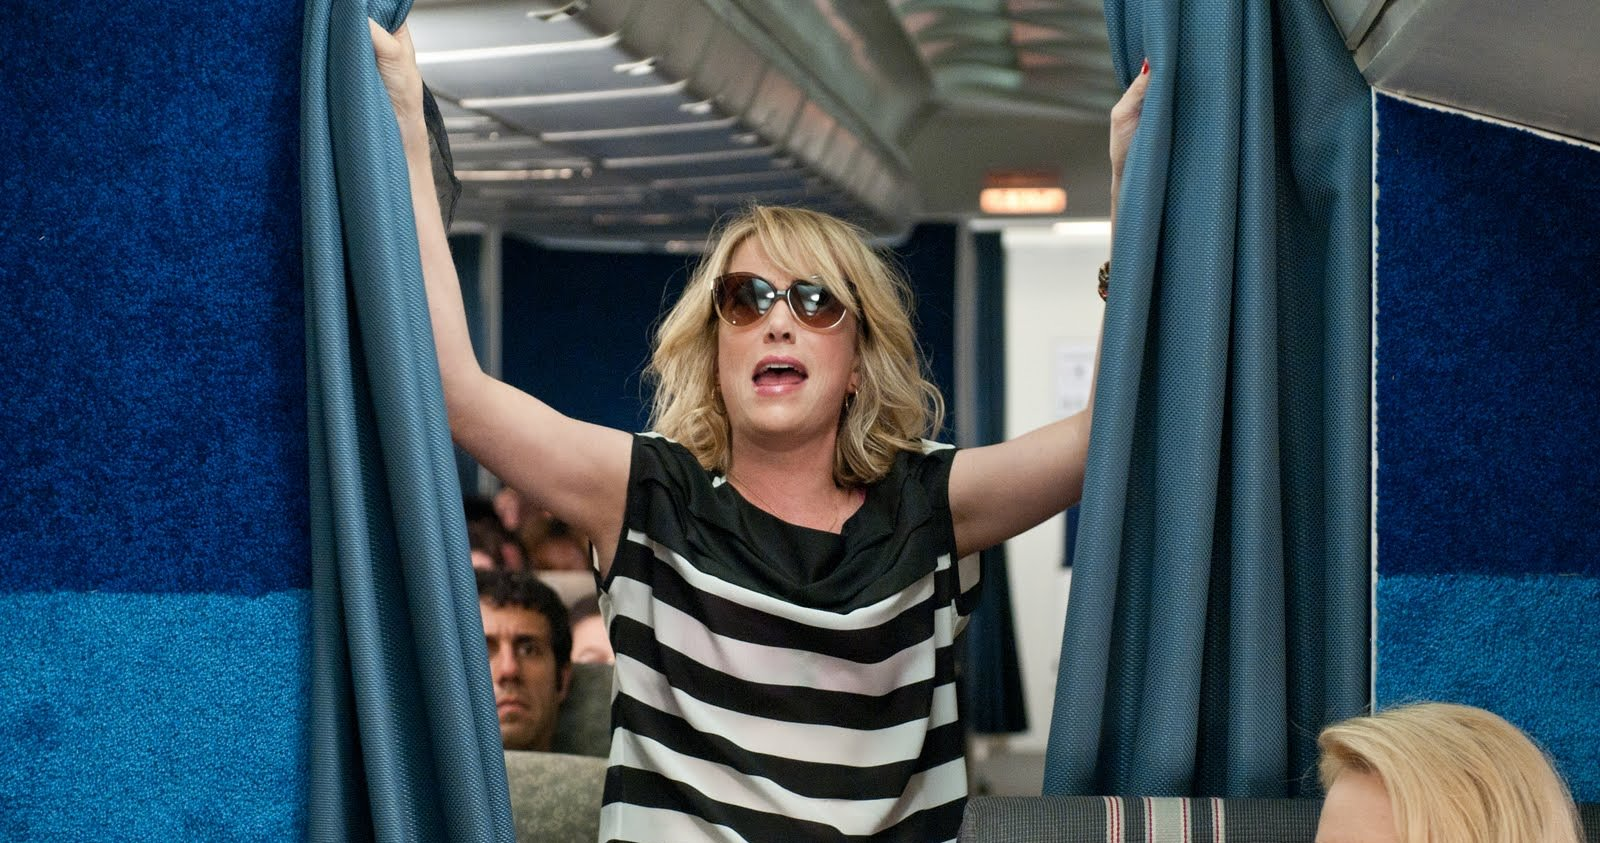 Kristen-Wiig-in-Bridesmaids